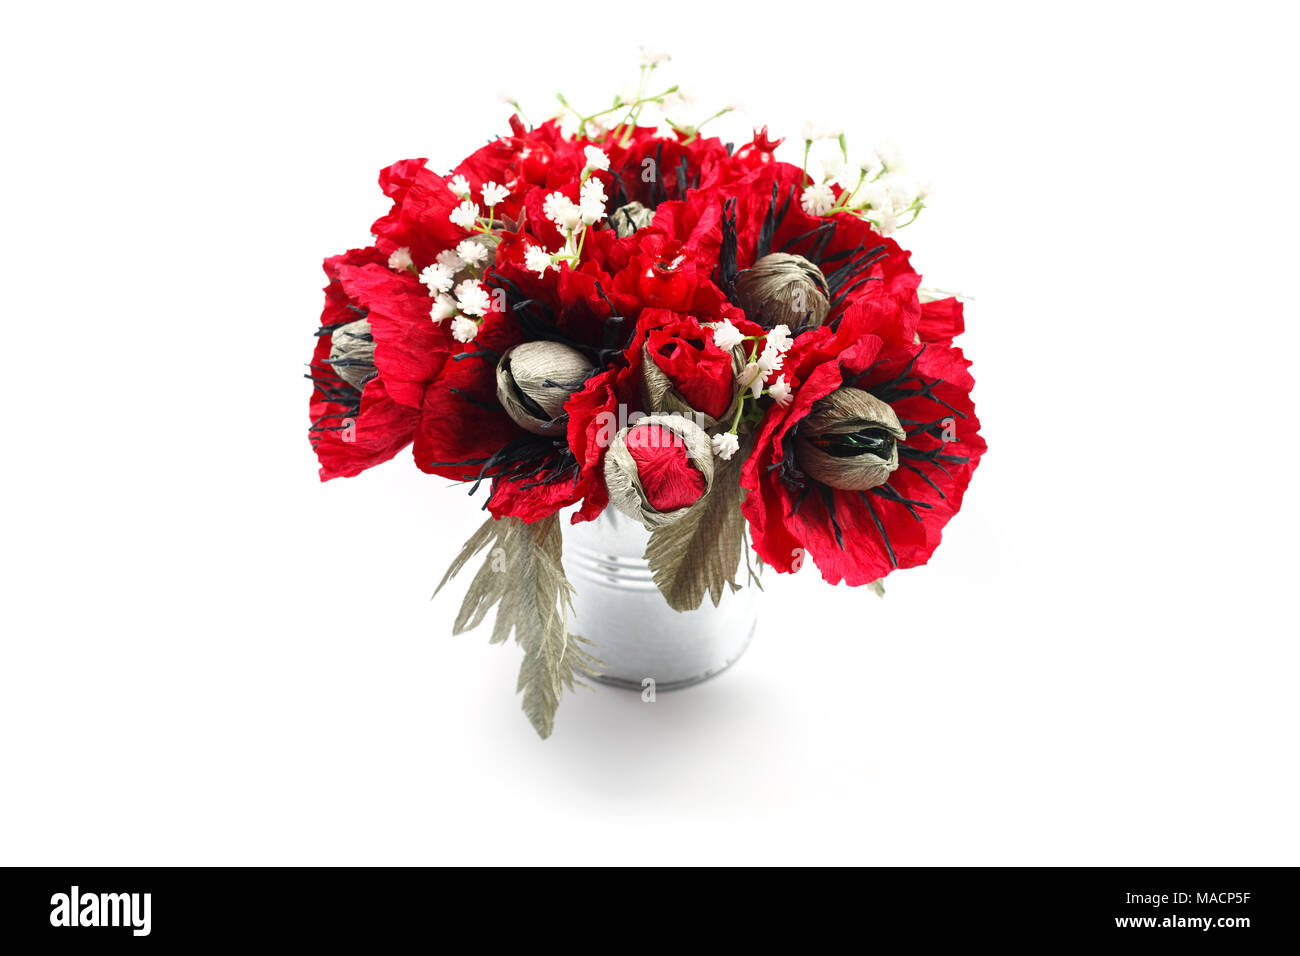 Bouquet of paper poppies handmade with candies in a galvanized metal bucket as a gift - Stock Image